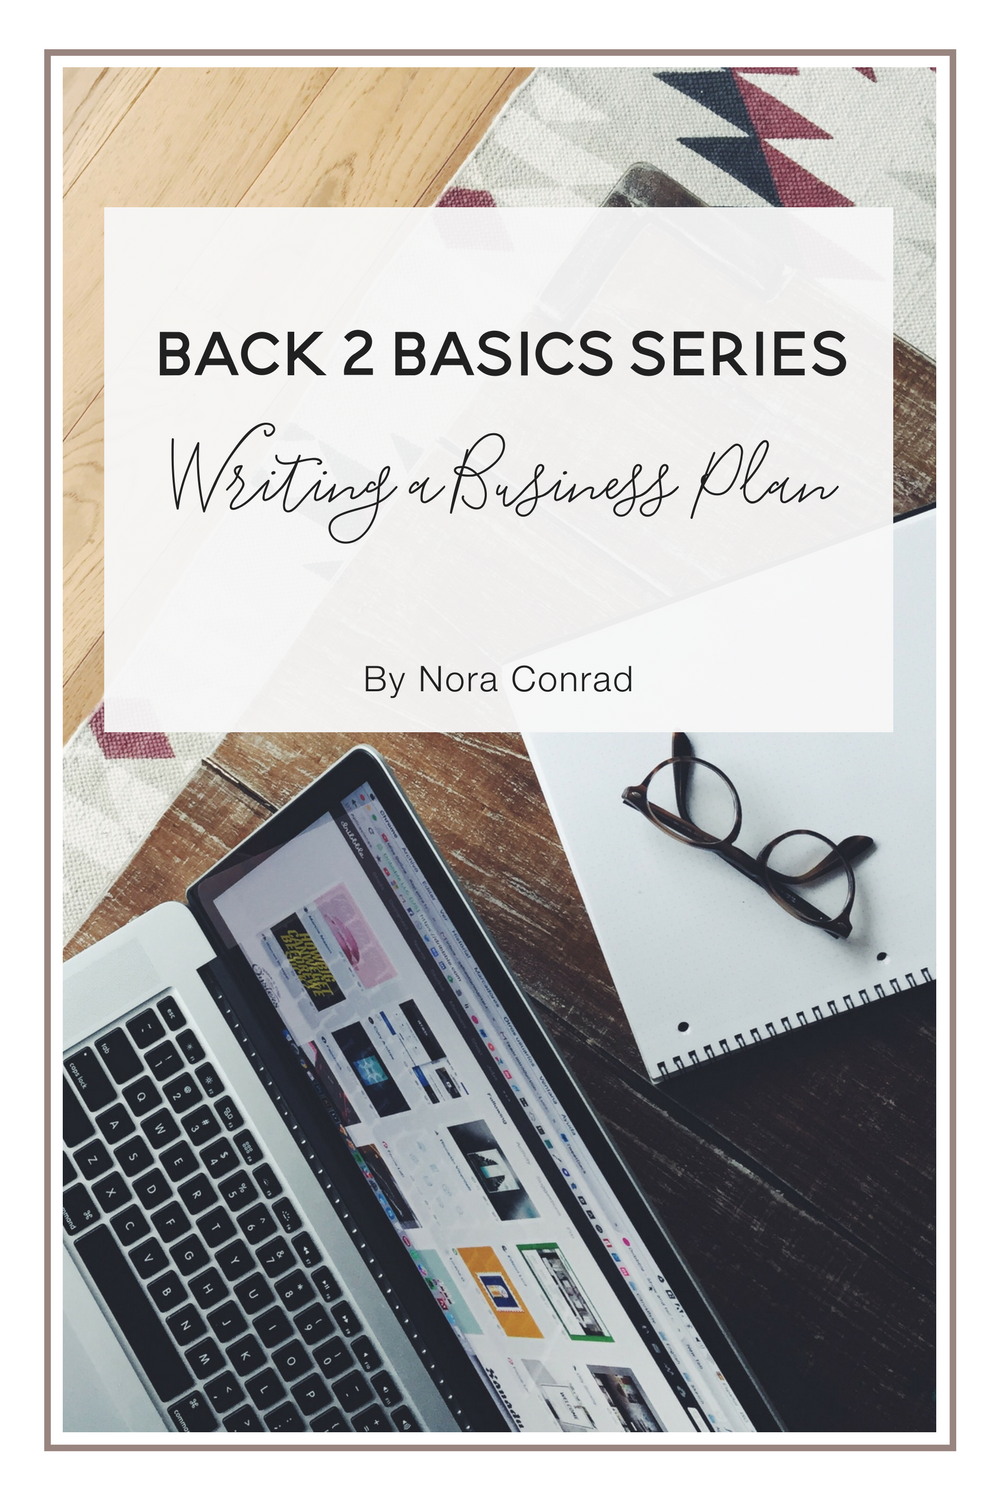 Writing a business plan - back 2 basics series